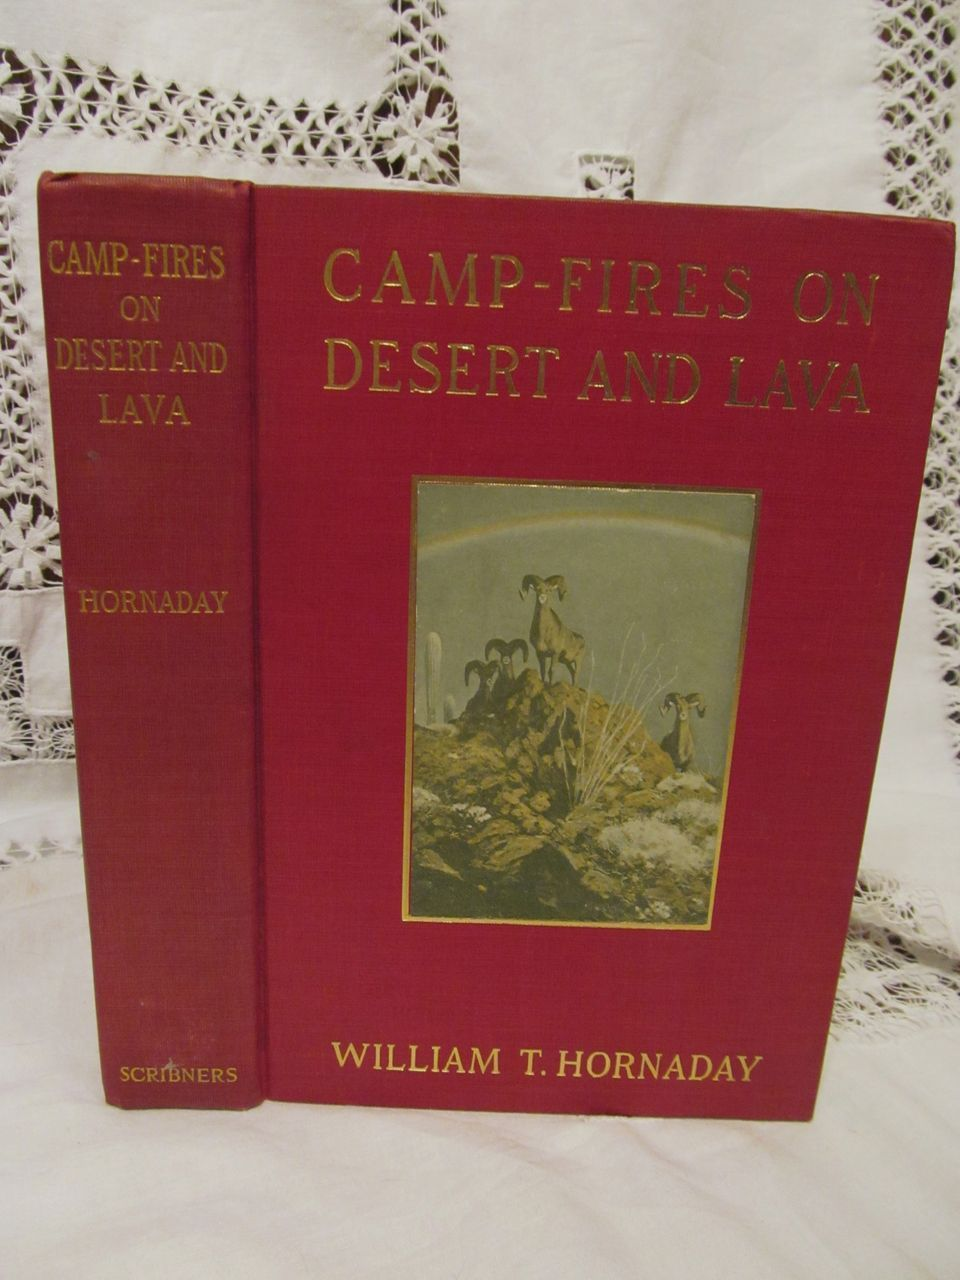 1908 Camp-Fires on Desert and Lava by William T Hornaday,Illustrated, Publ by Charles Scribner's Sons